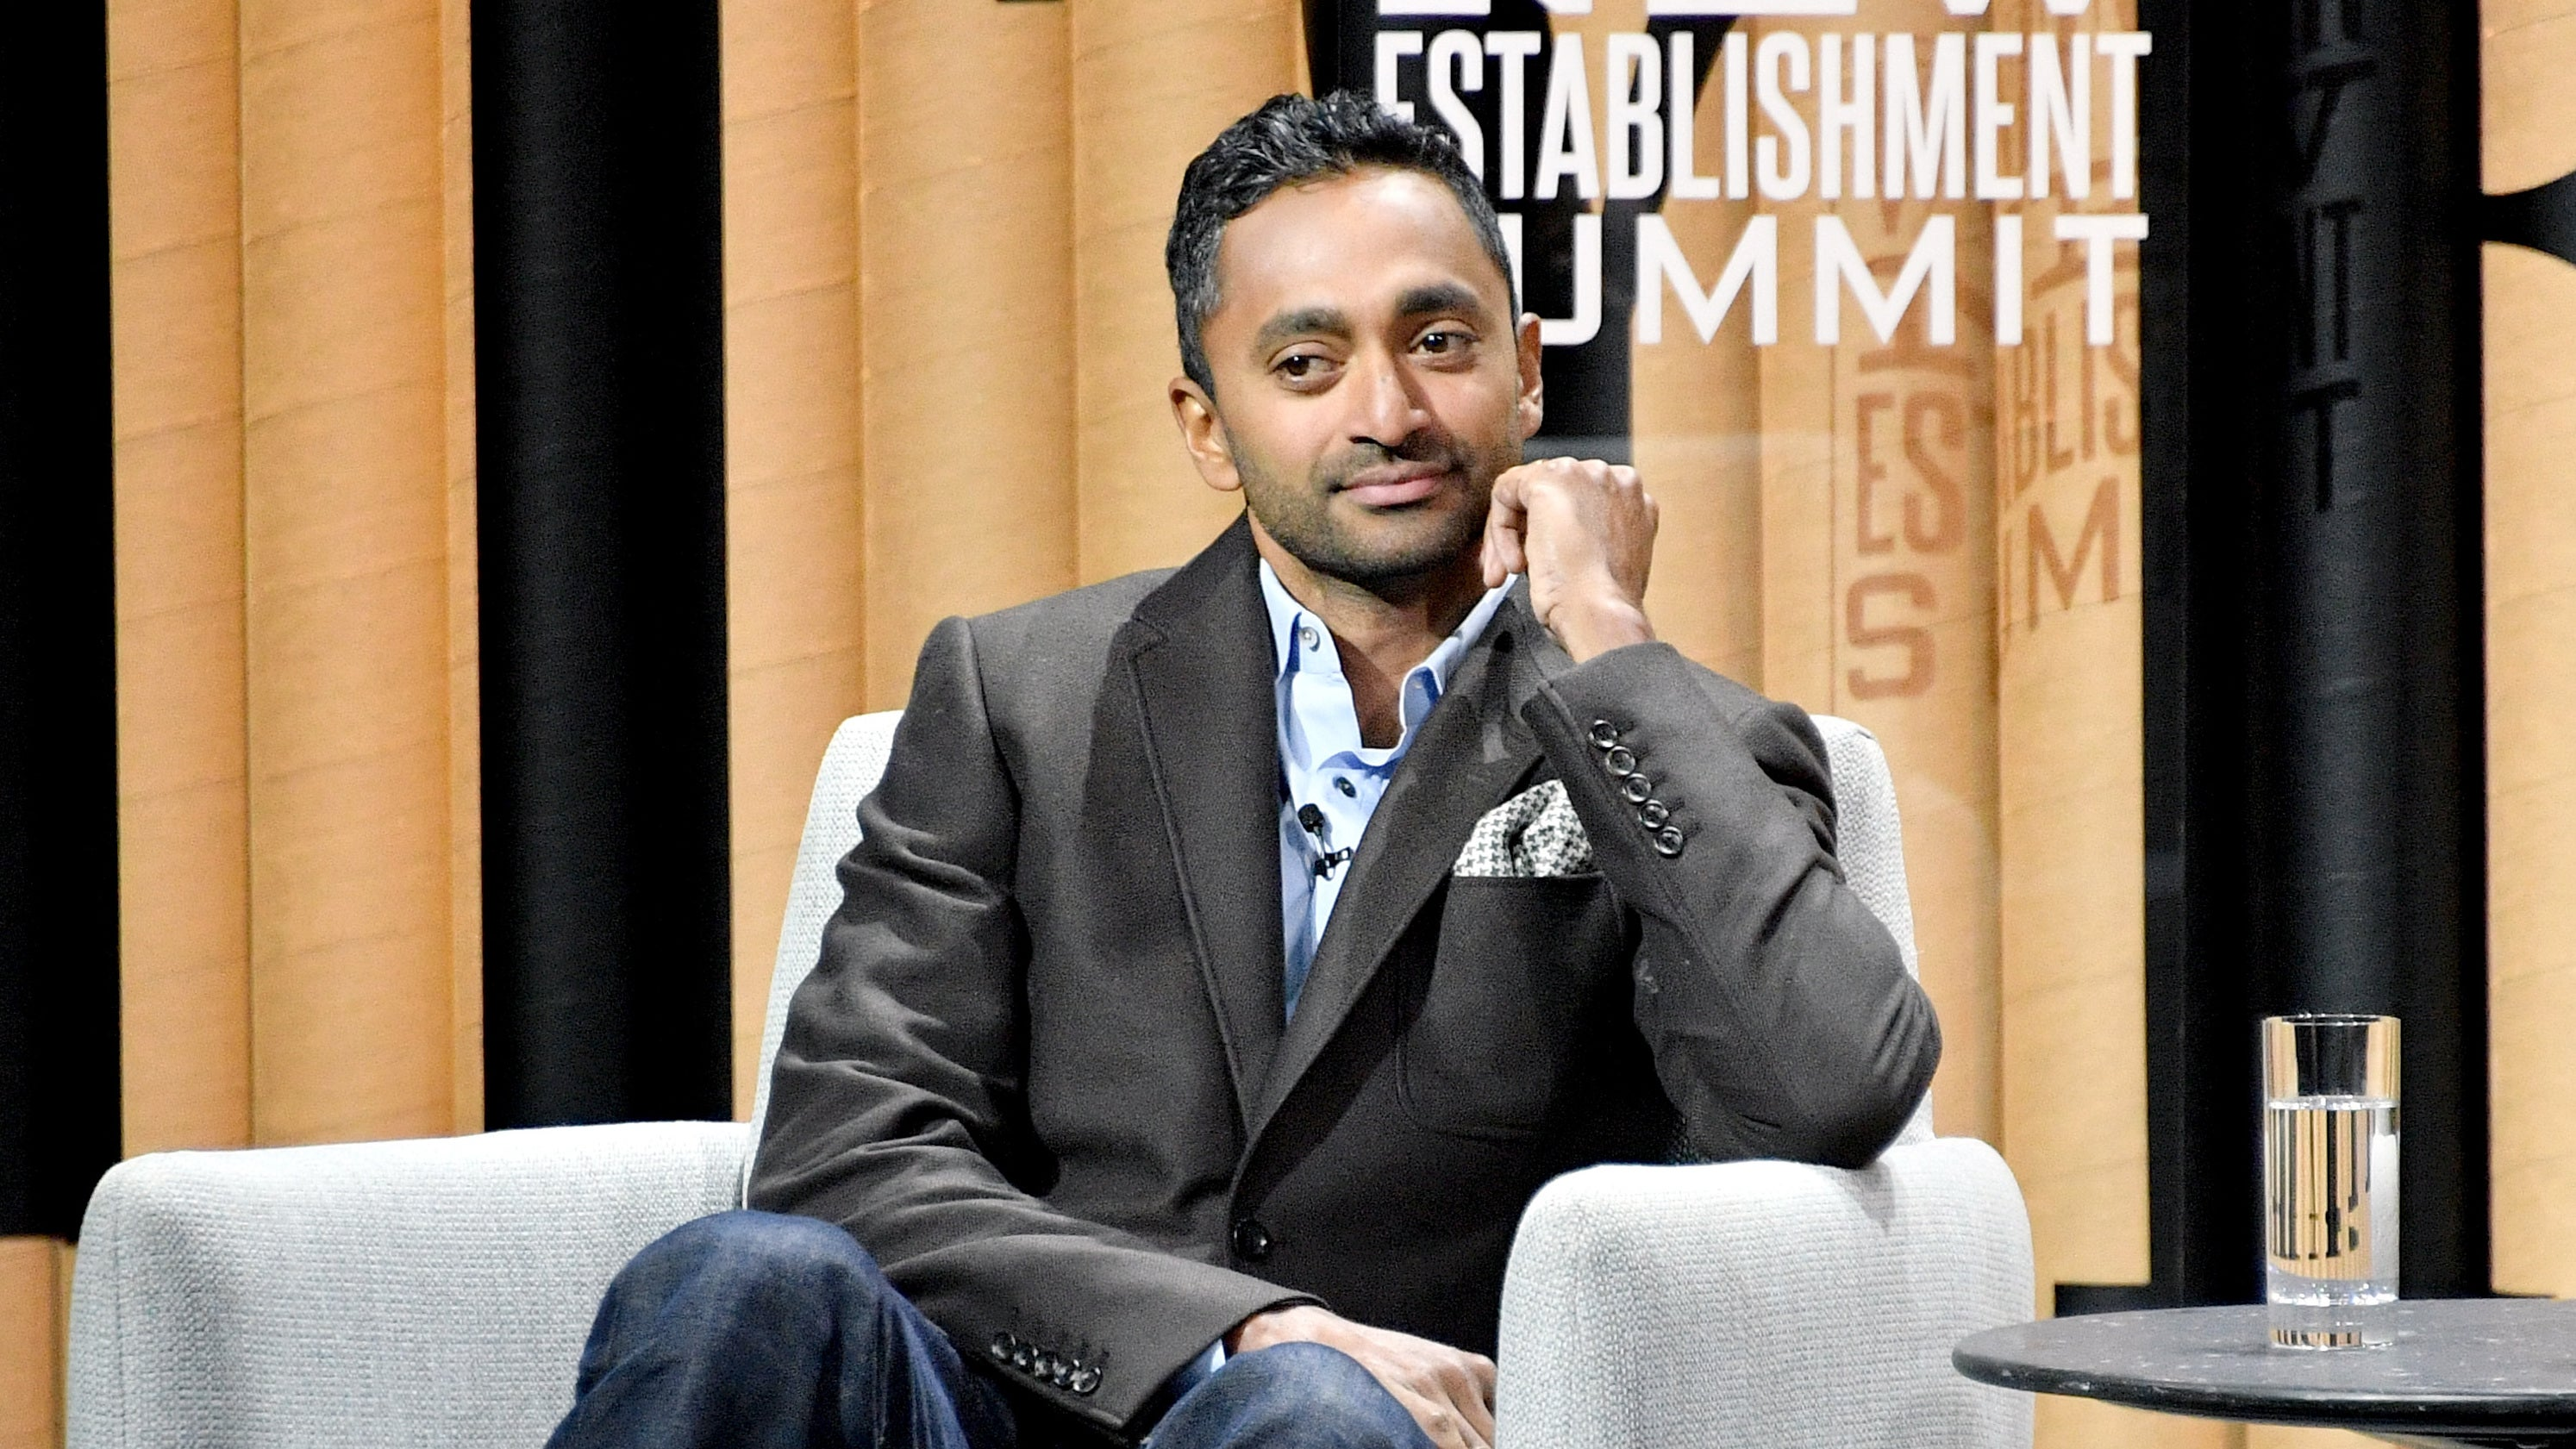 Former Facebook exec: Social media is ripping apart society